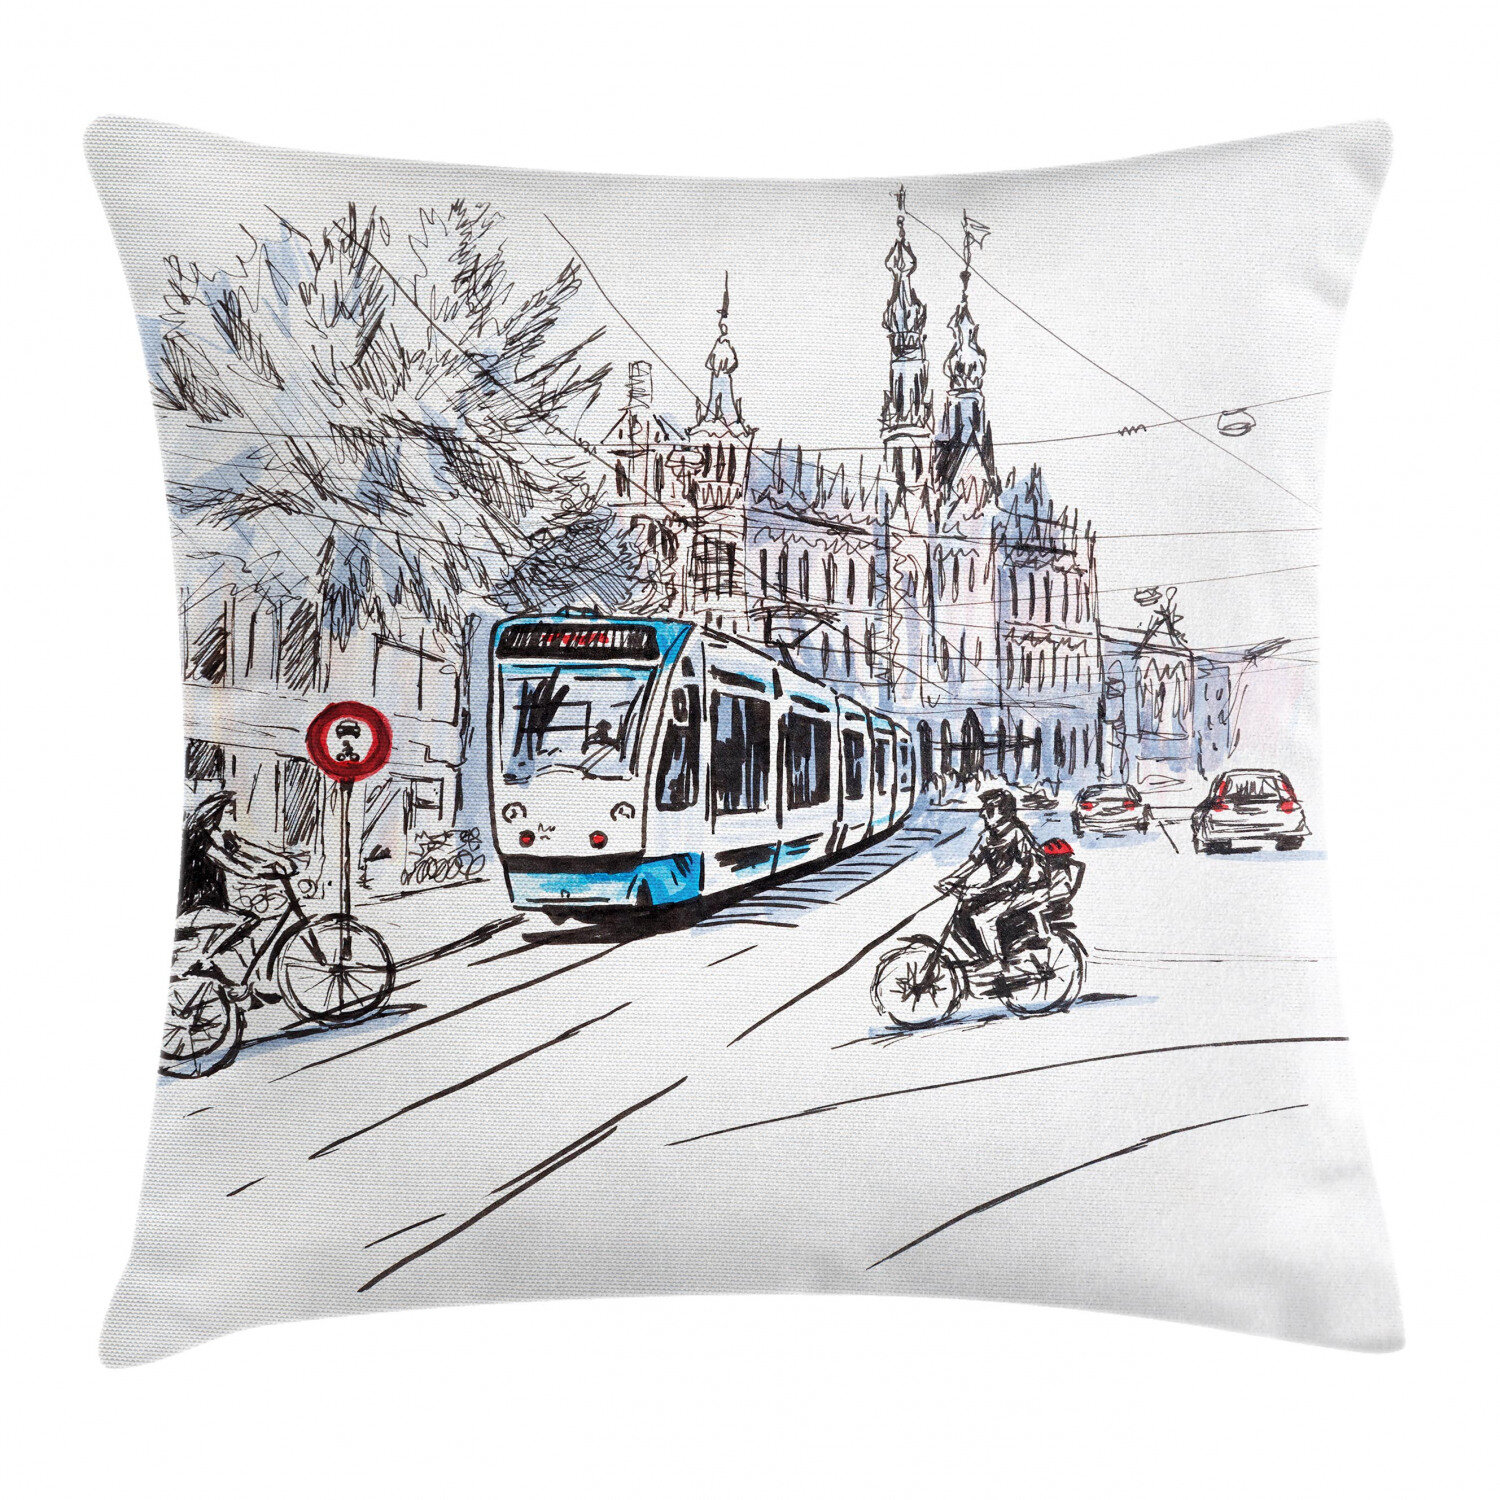 East Urban Home Tram And Bicyclists Cityscape Indoor Outdoor 40 Throw Pillow Cover Hand Drawn Tram And Bicyclists Cityscape Of Amsterdam Netherlands Urban Life Wayfair